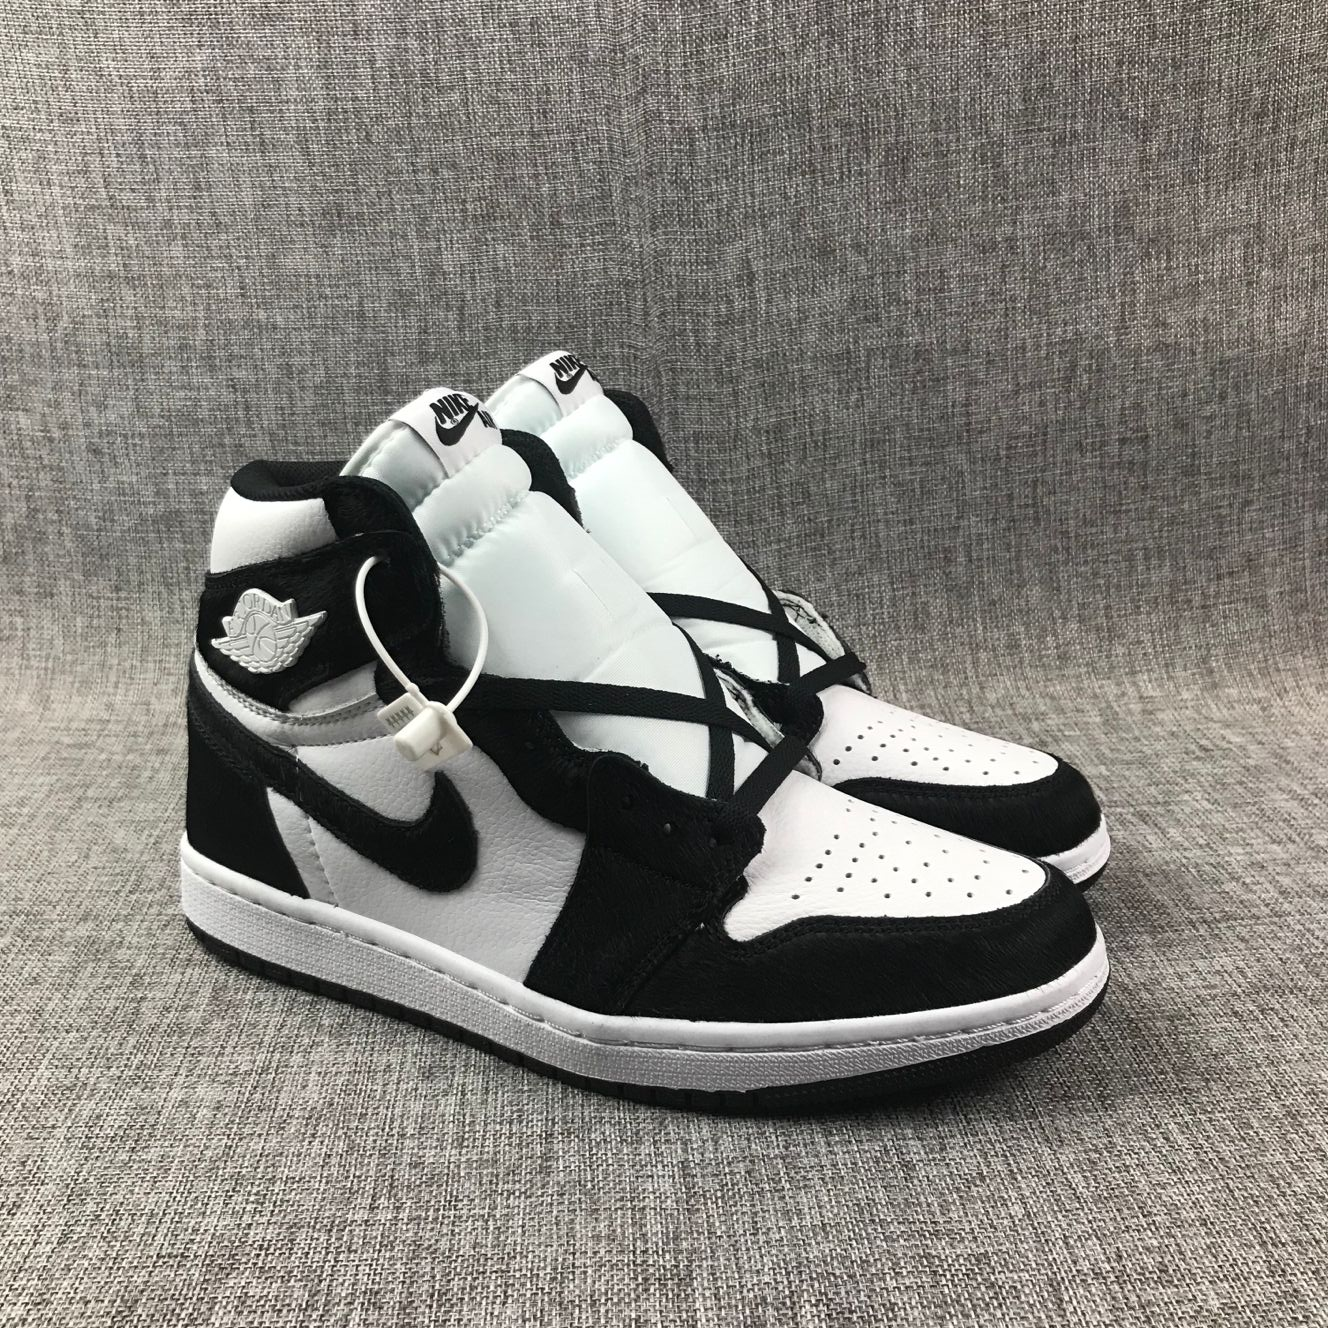 Air Jordan 1 Horse Hair White Black Shoes